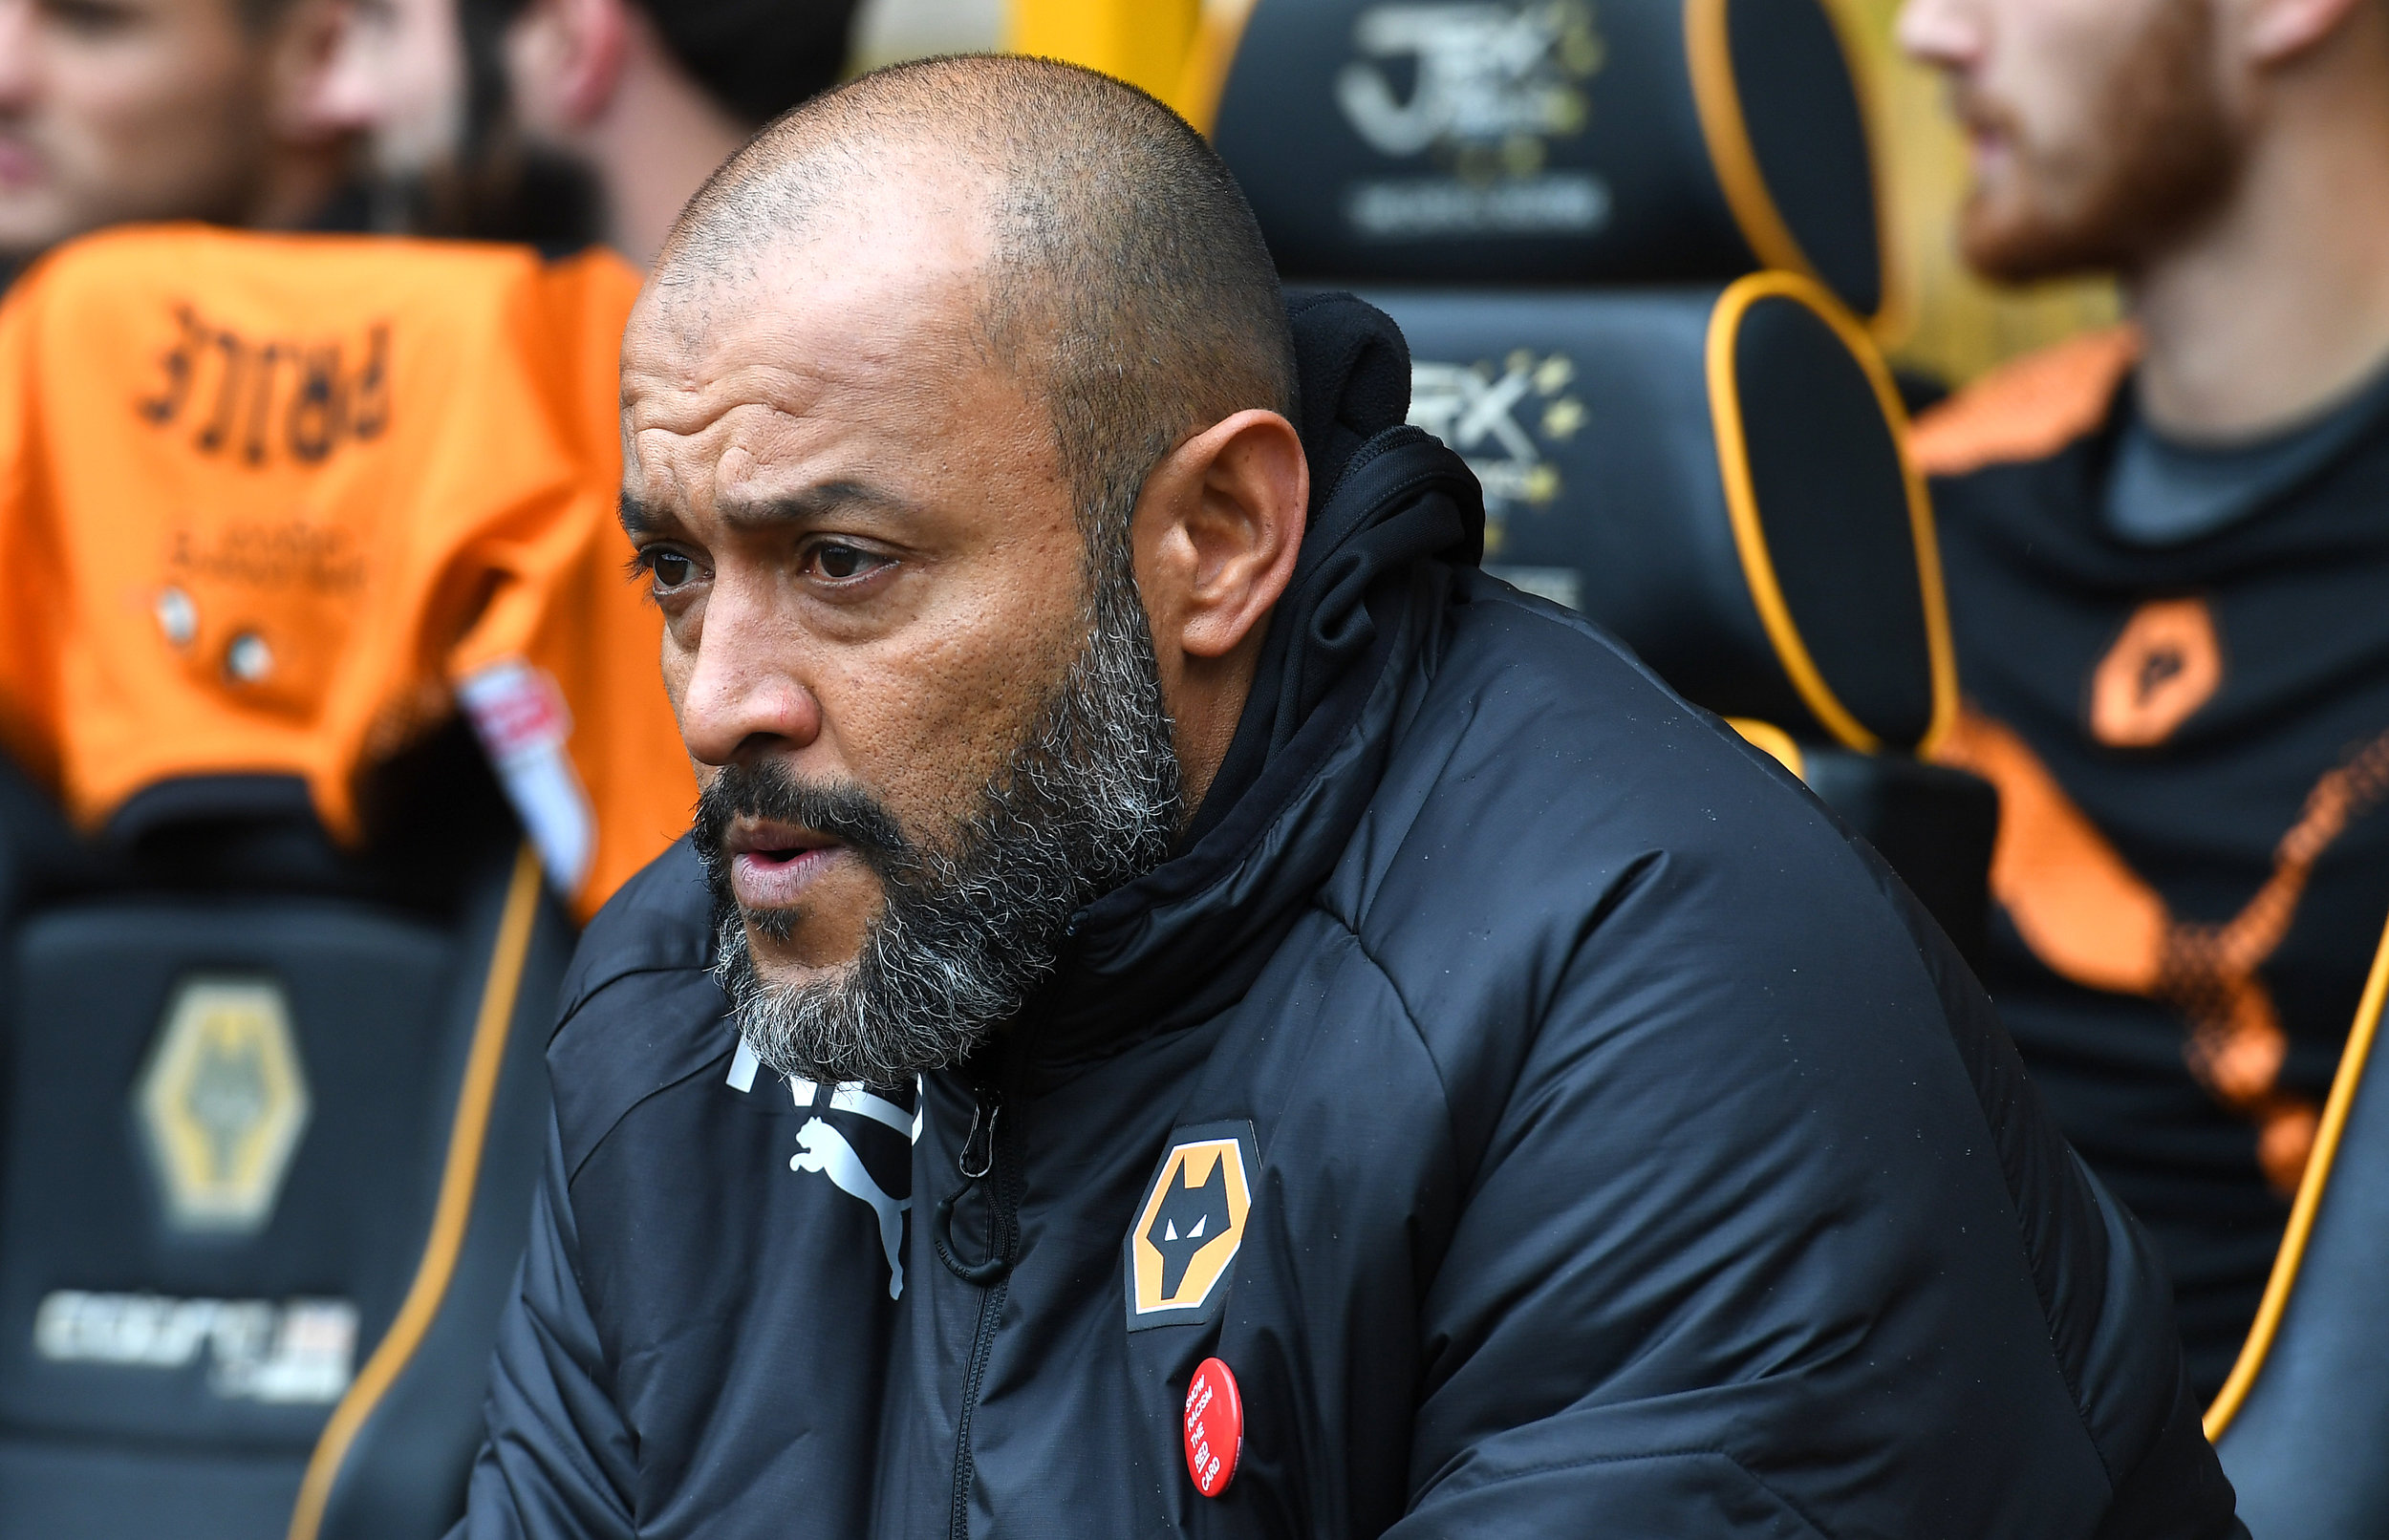 WWFC Manager,Nuno Espírito Santo, wears a SRtRC badge in support of the campaign